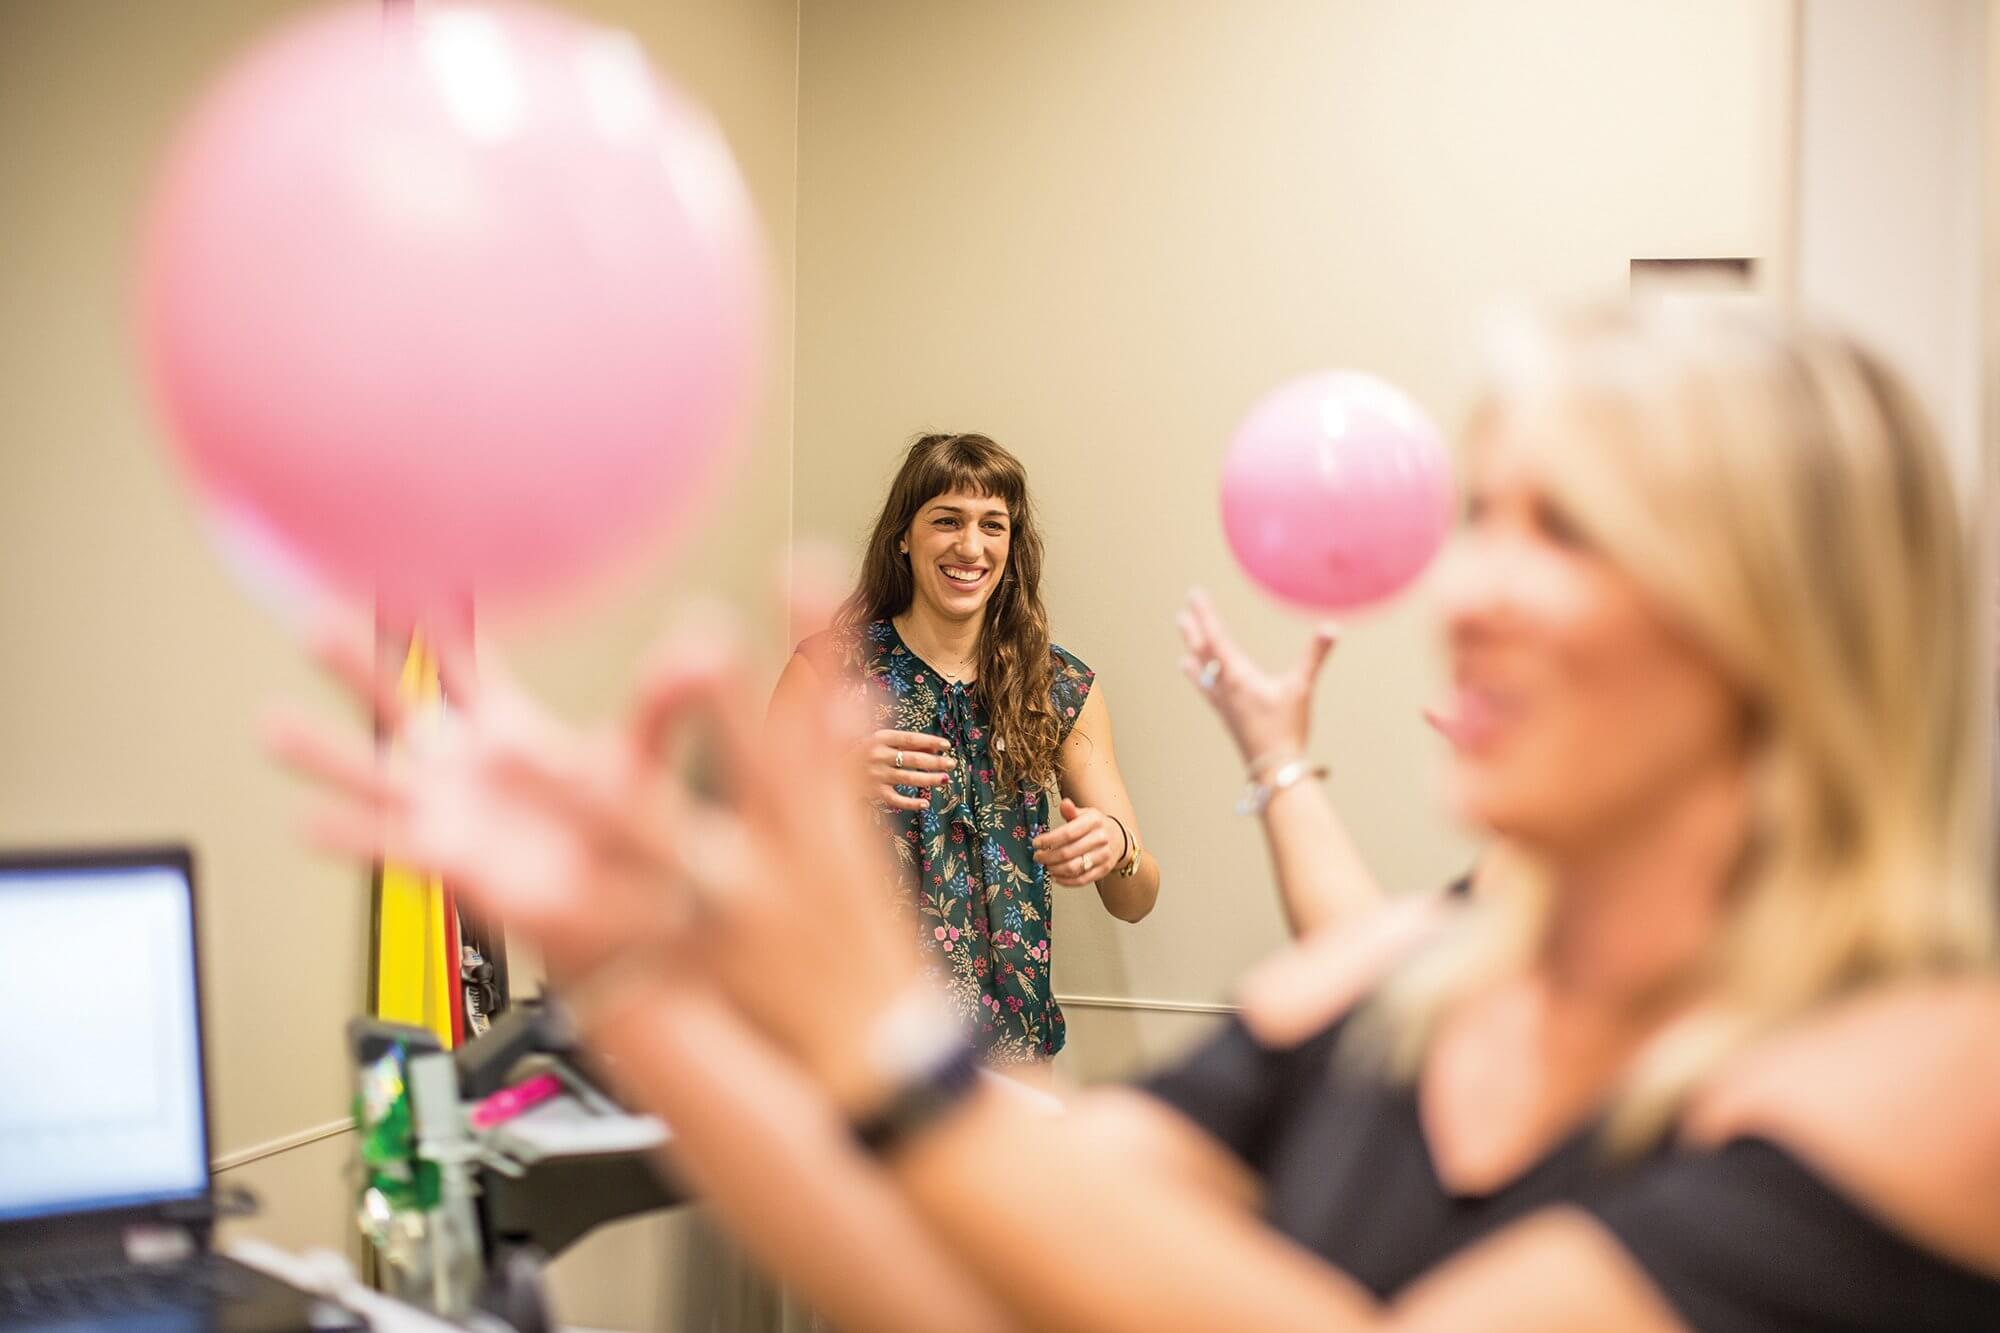 Vanessa Schlitzkus, right, works with April Dominick, a physical therapist, in the Pelvic Floor Health Center at Memorial Hermann Memorial City Medical Center.